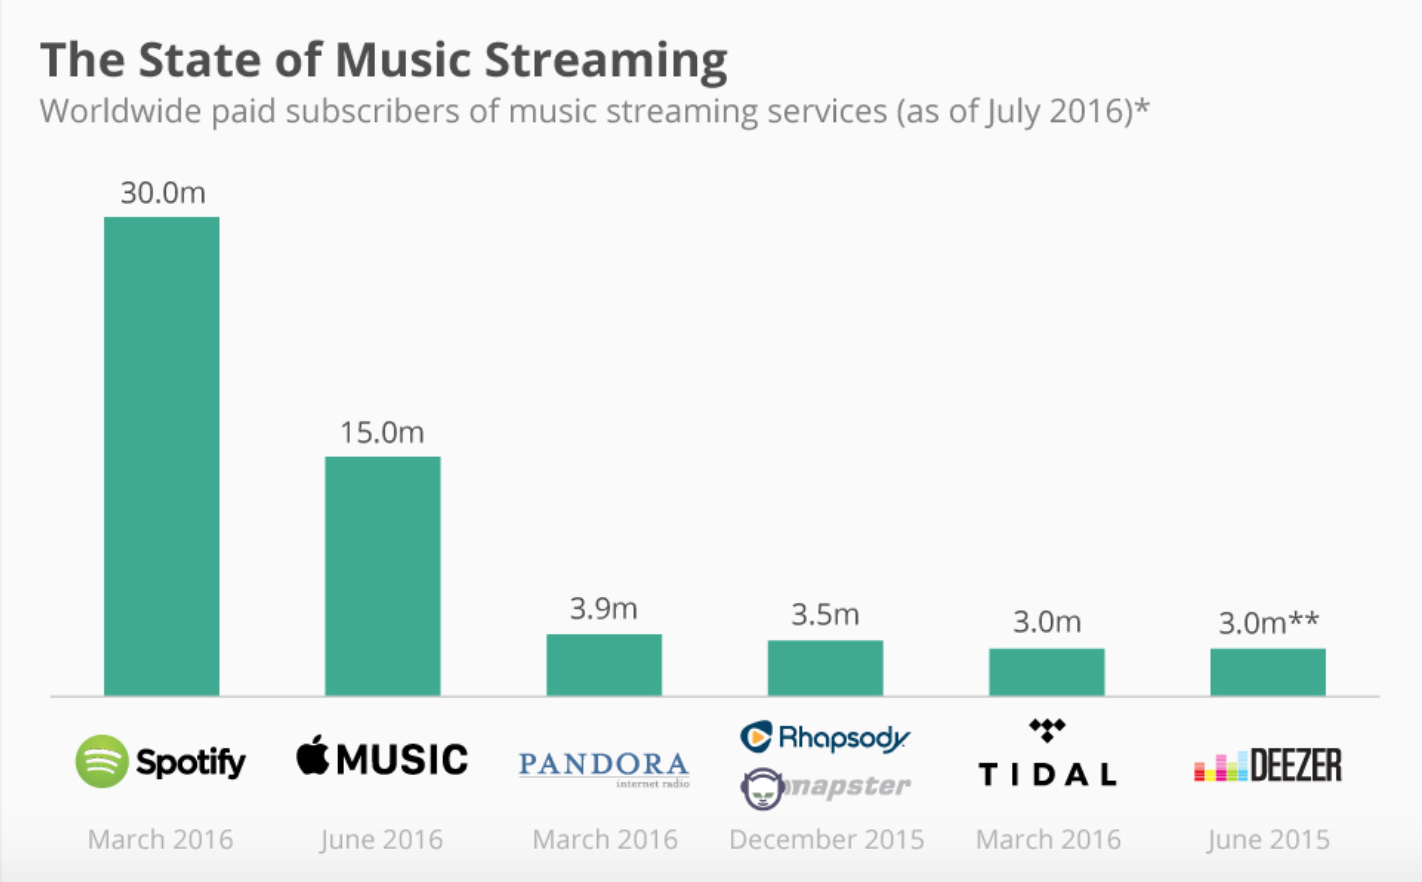 The current state of music streaming